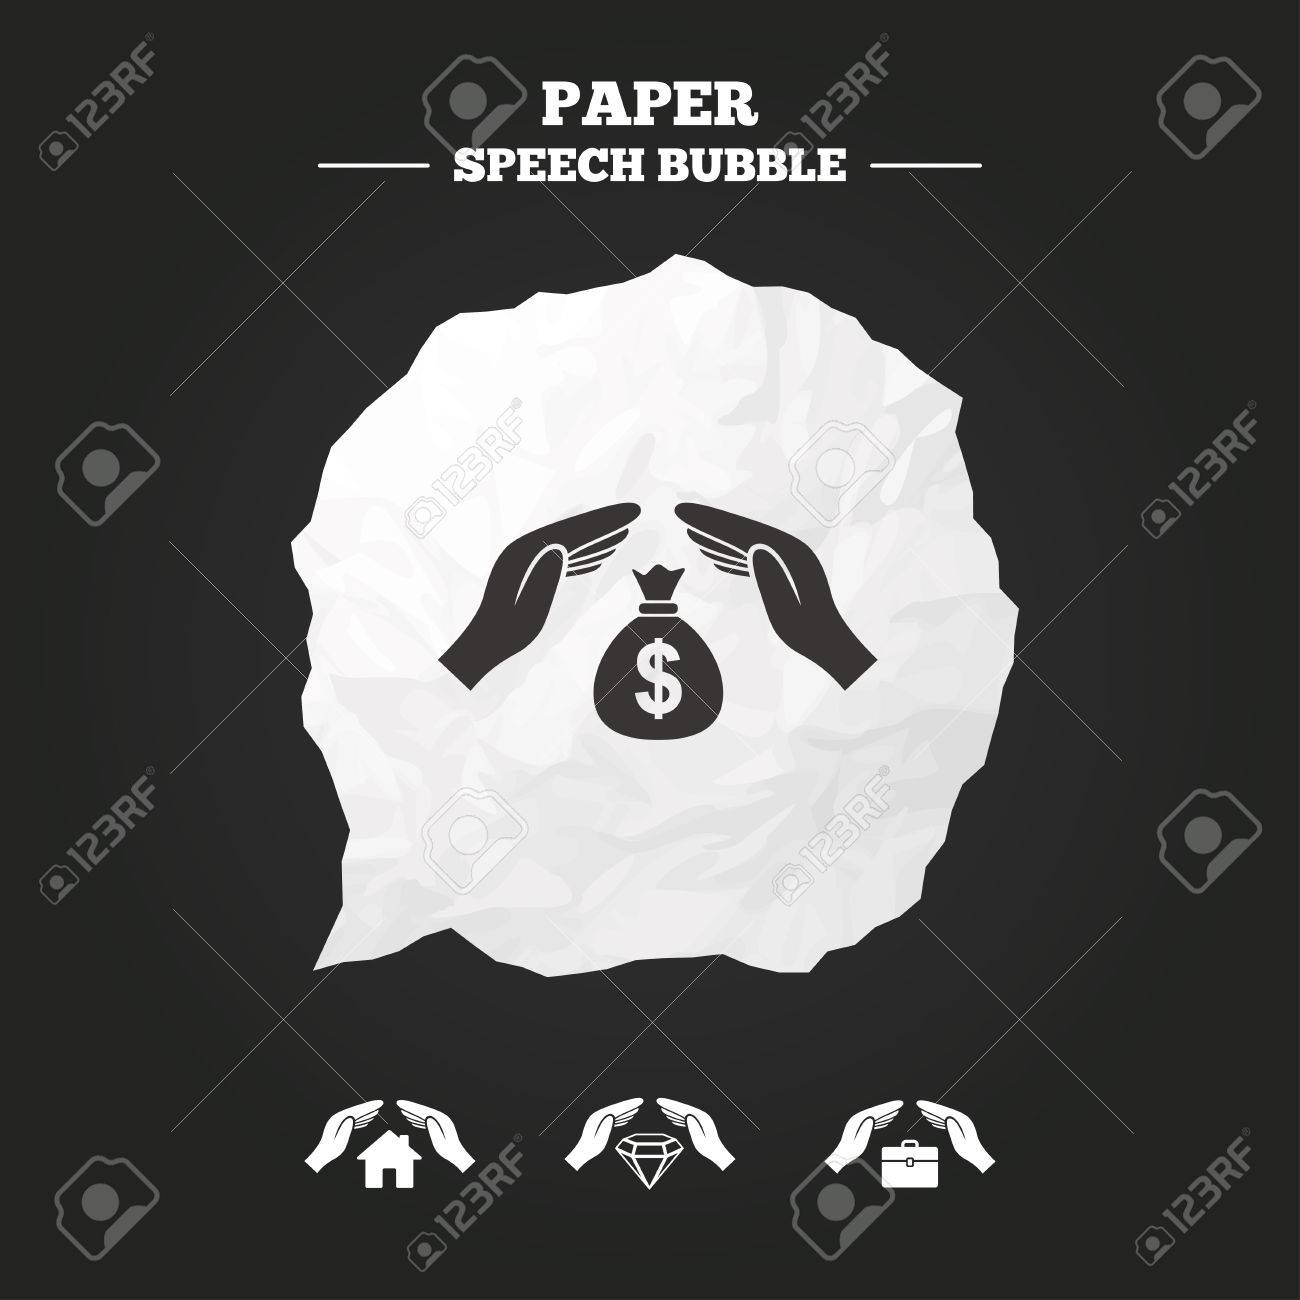 Hands insurance icons money bag savings insurance symbols hands insurance icons money bag savings insurance symbols jewelry diamond symbol house property biocorpaavc